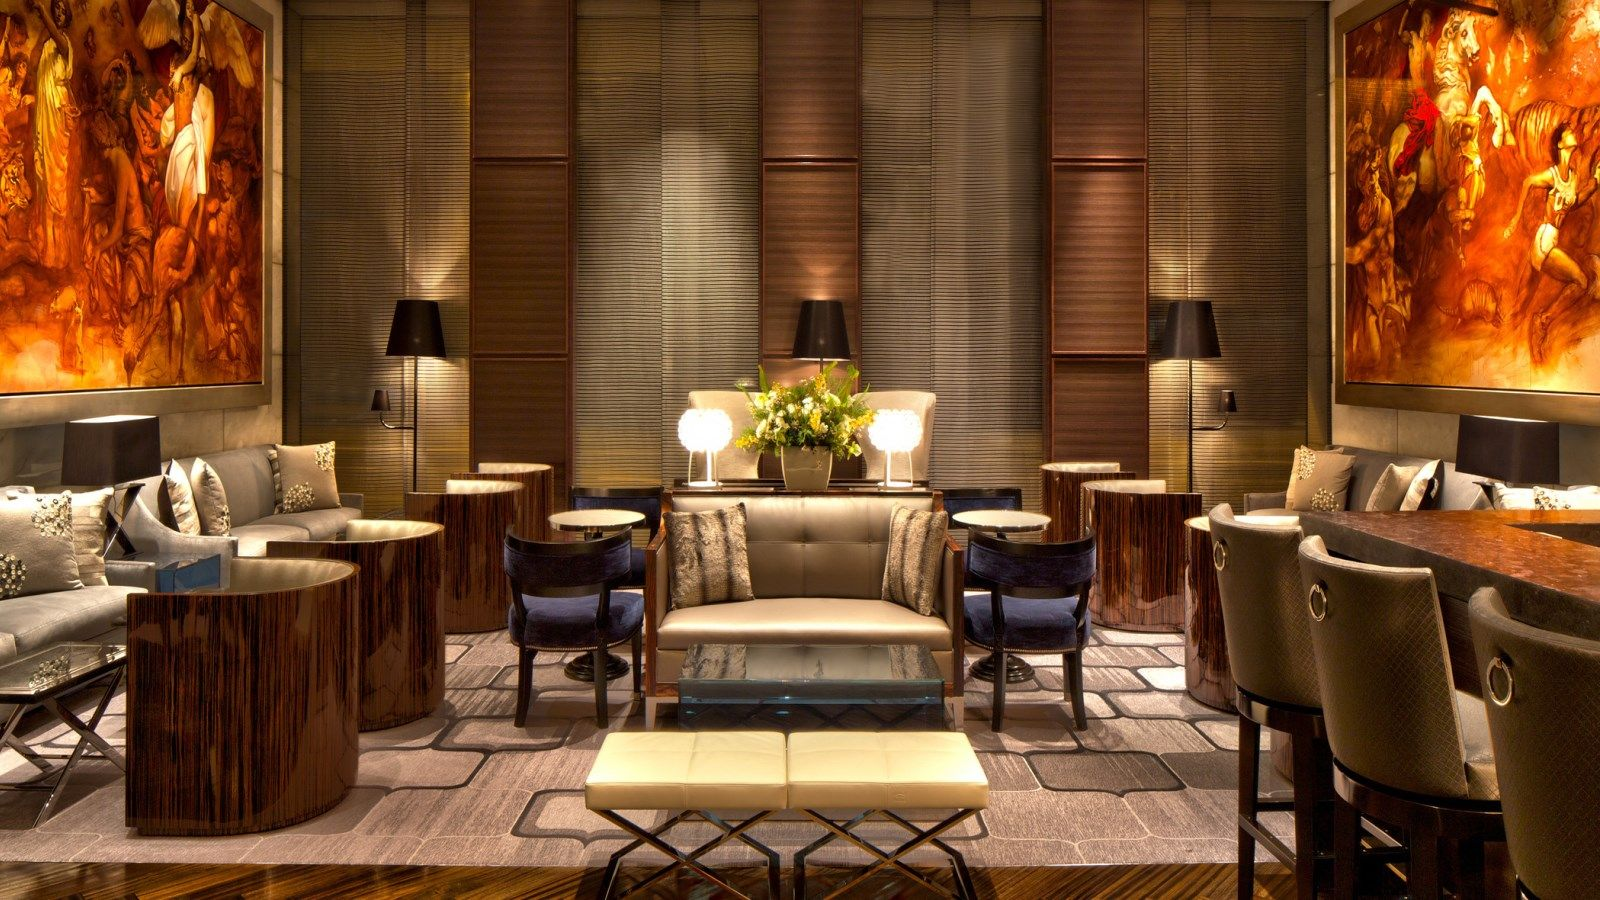 Holiday dining and afternoon tea at The St. Regis San Francisco Lobby Lounge